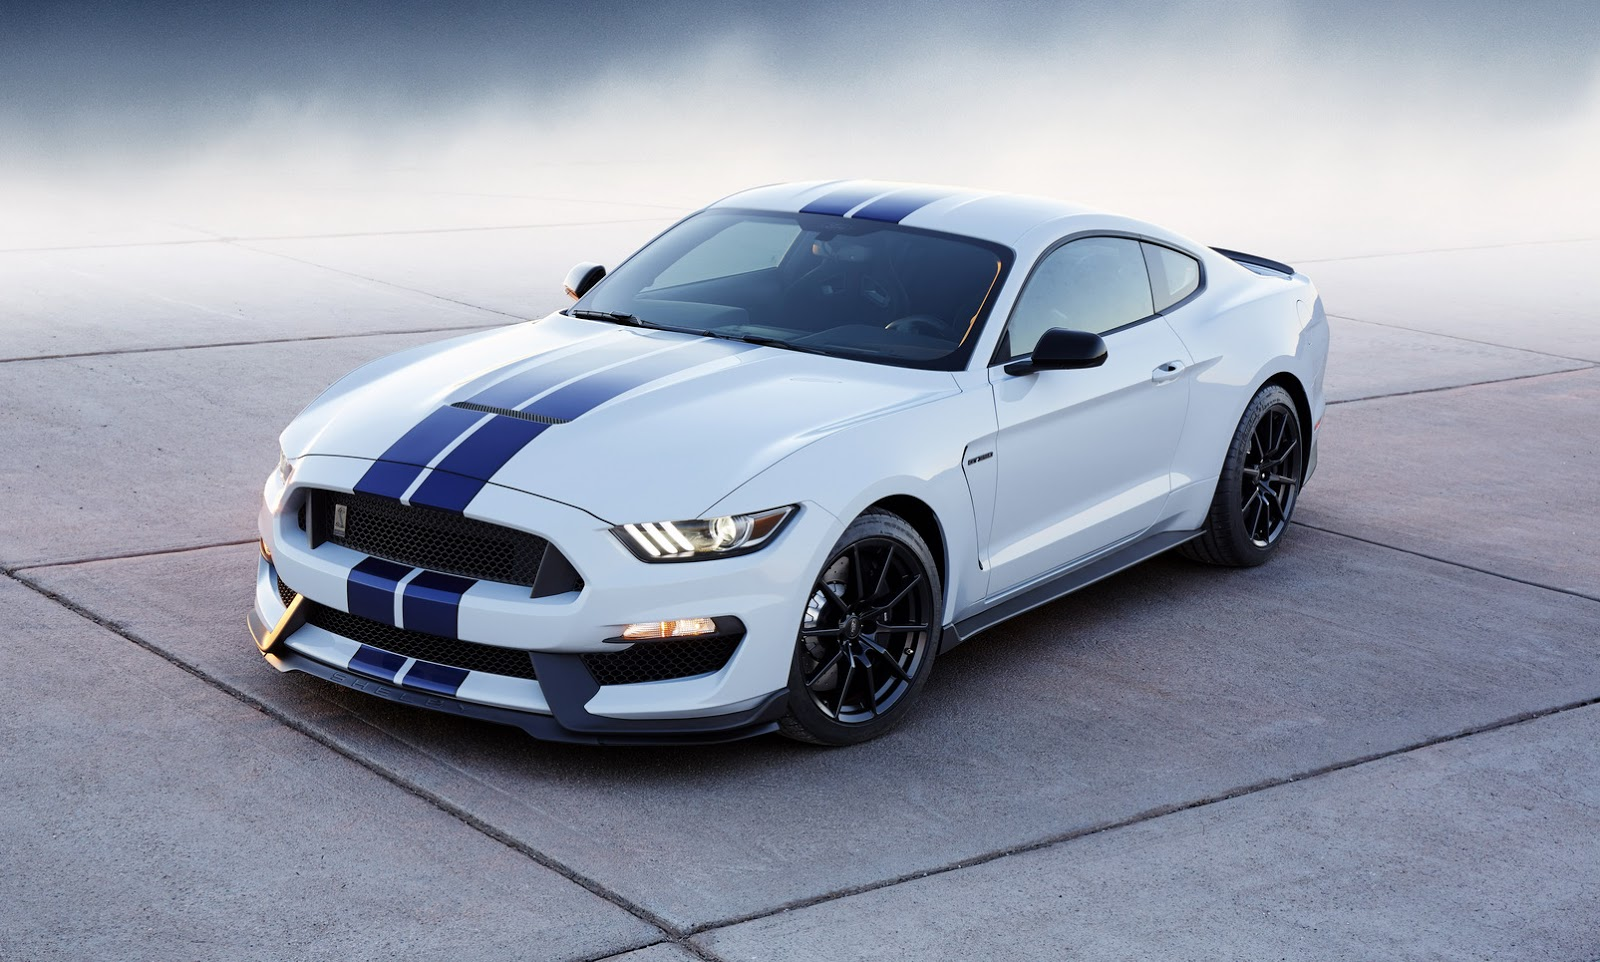 shelby gt350 photo gallery car gallery sports cars autocar india